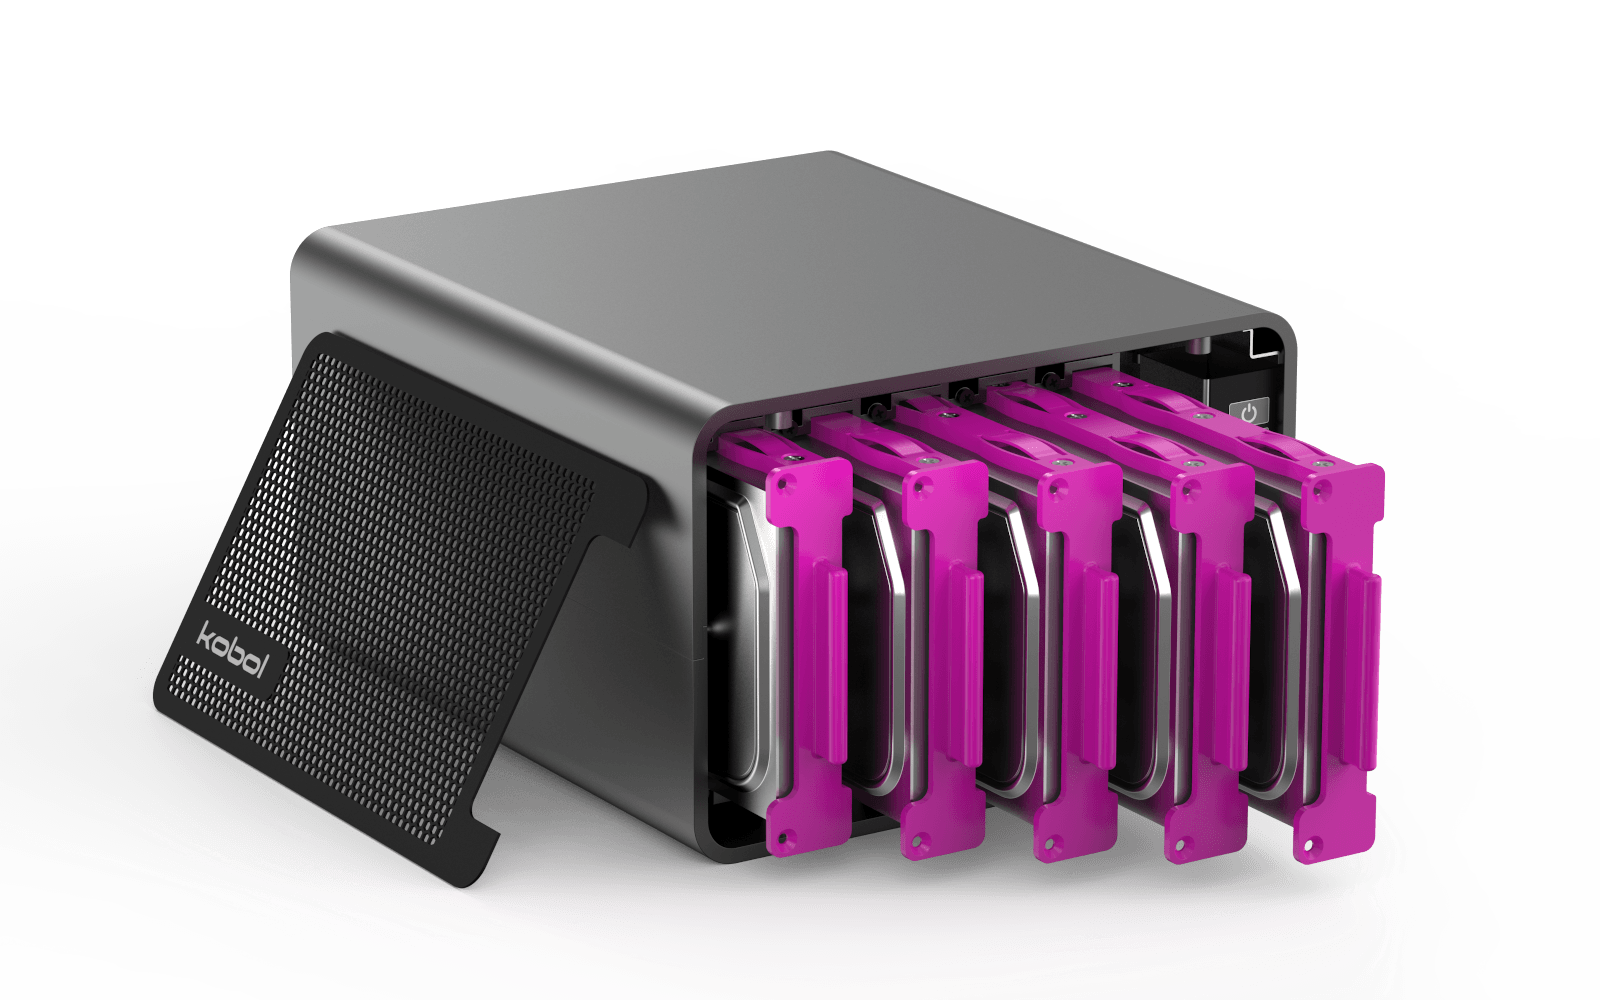 Helios64 Case 5-bay